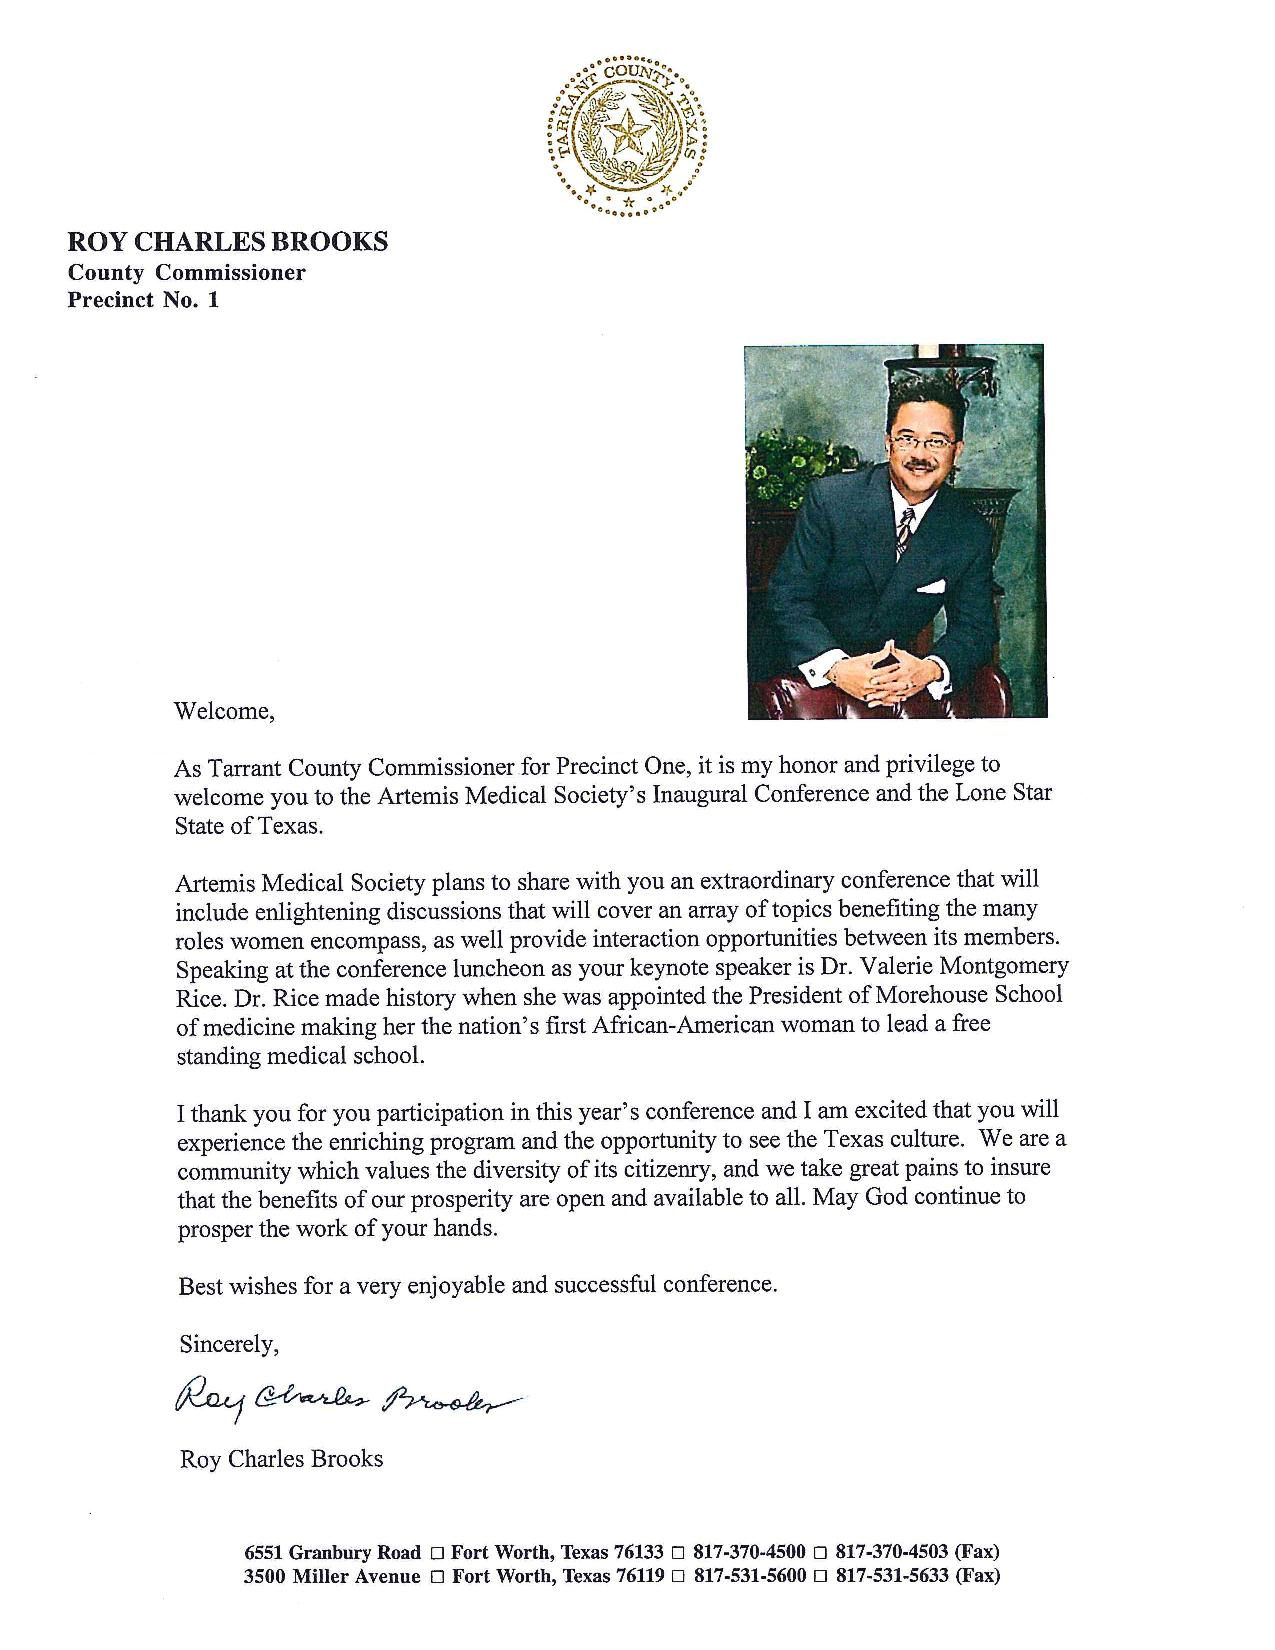 Welcome Letter From Tarrant County Commissioner Roy Charles Brooks – Welcome Letter